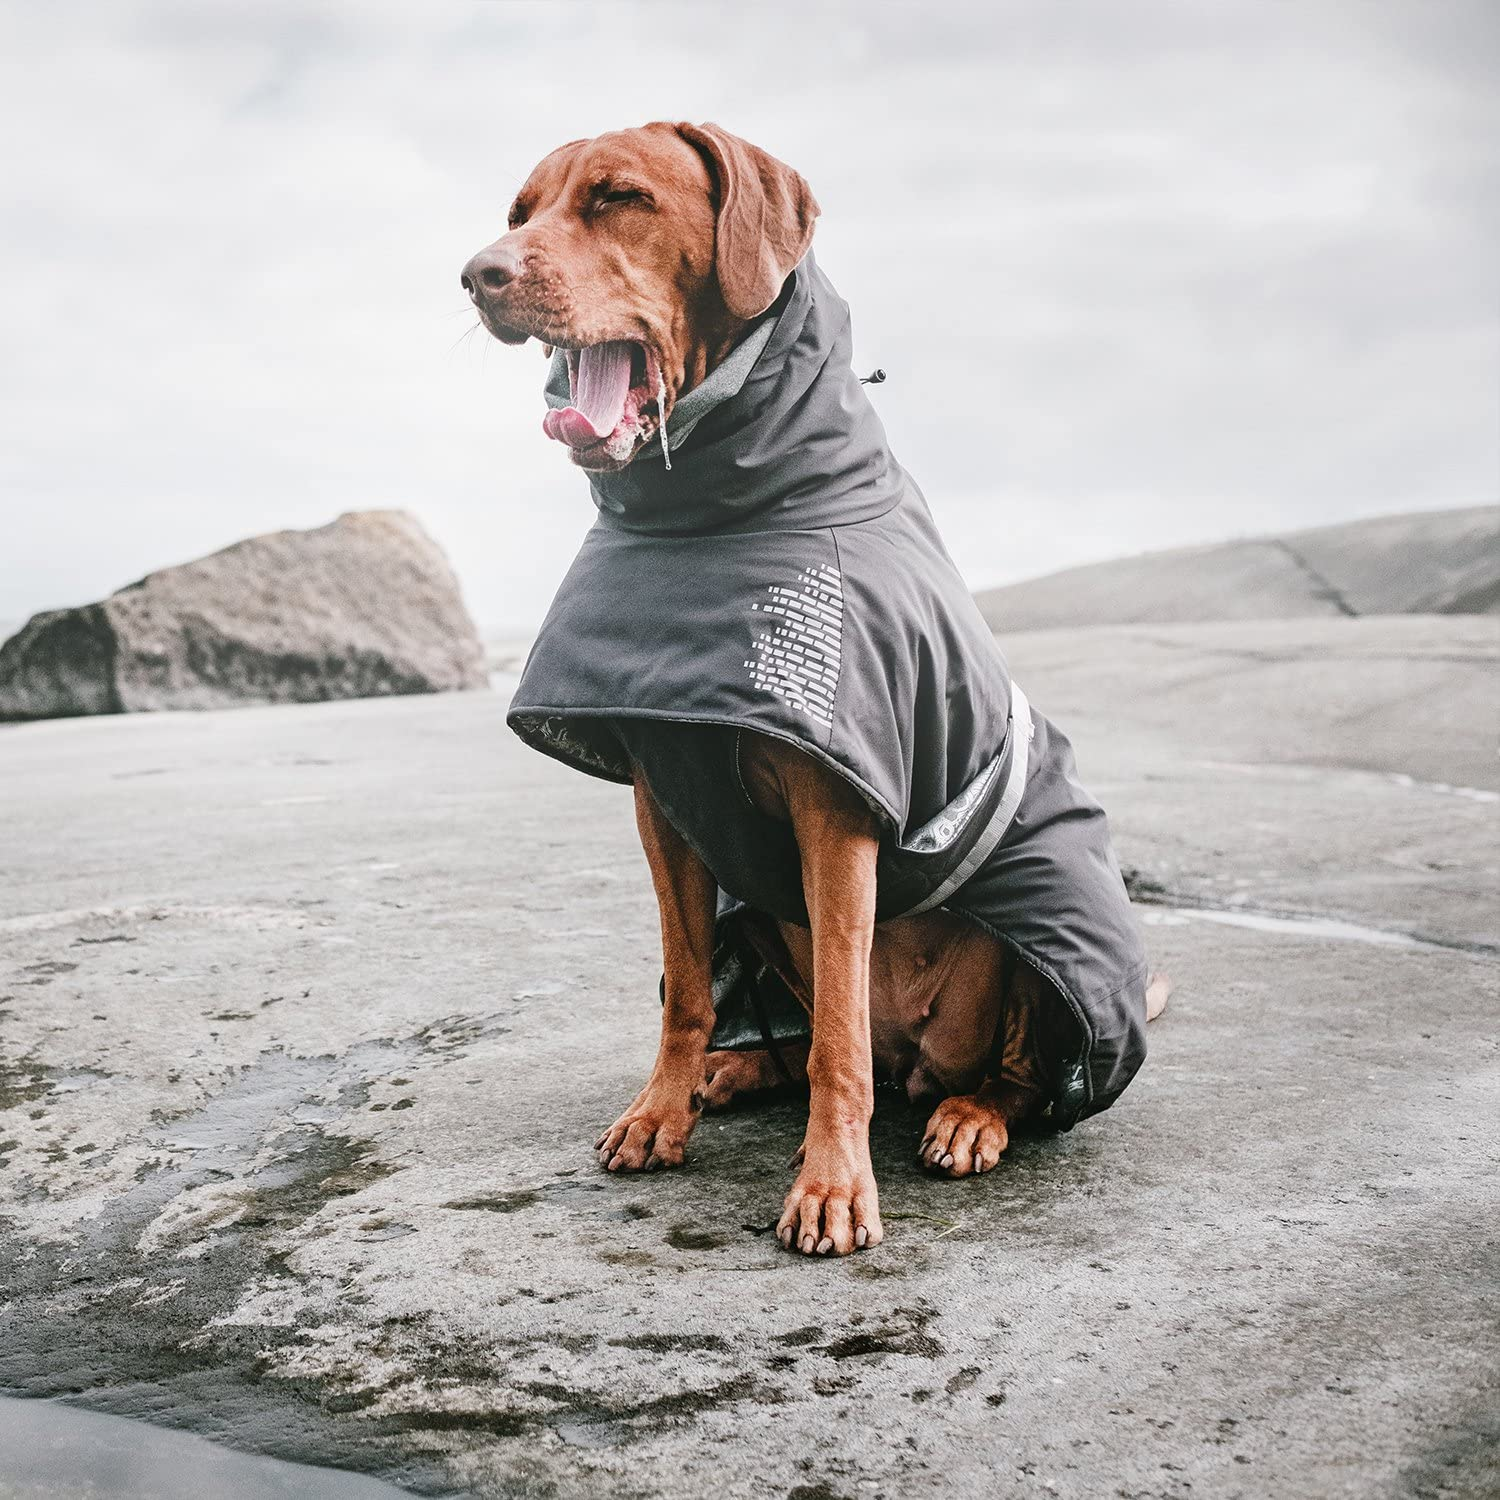 16 Stylish Raincoats for Large Dogs​ - feat. the Hurtta Extreme Warmer Dog Winter Jacket available from Amazon.